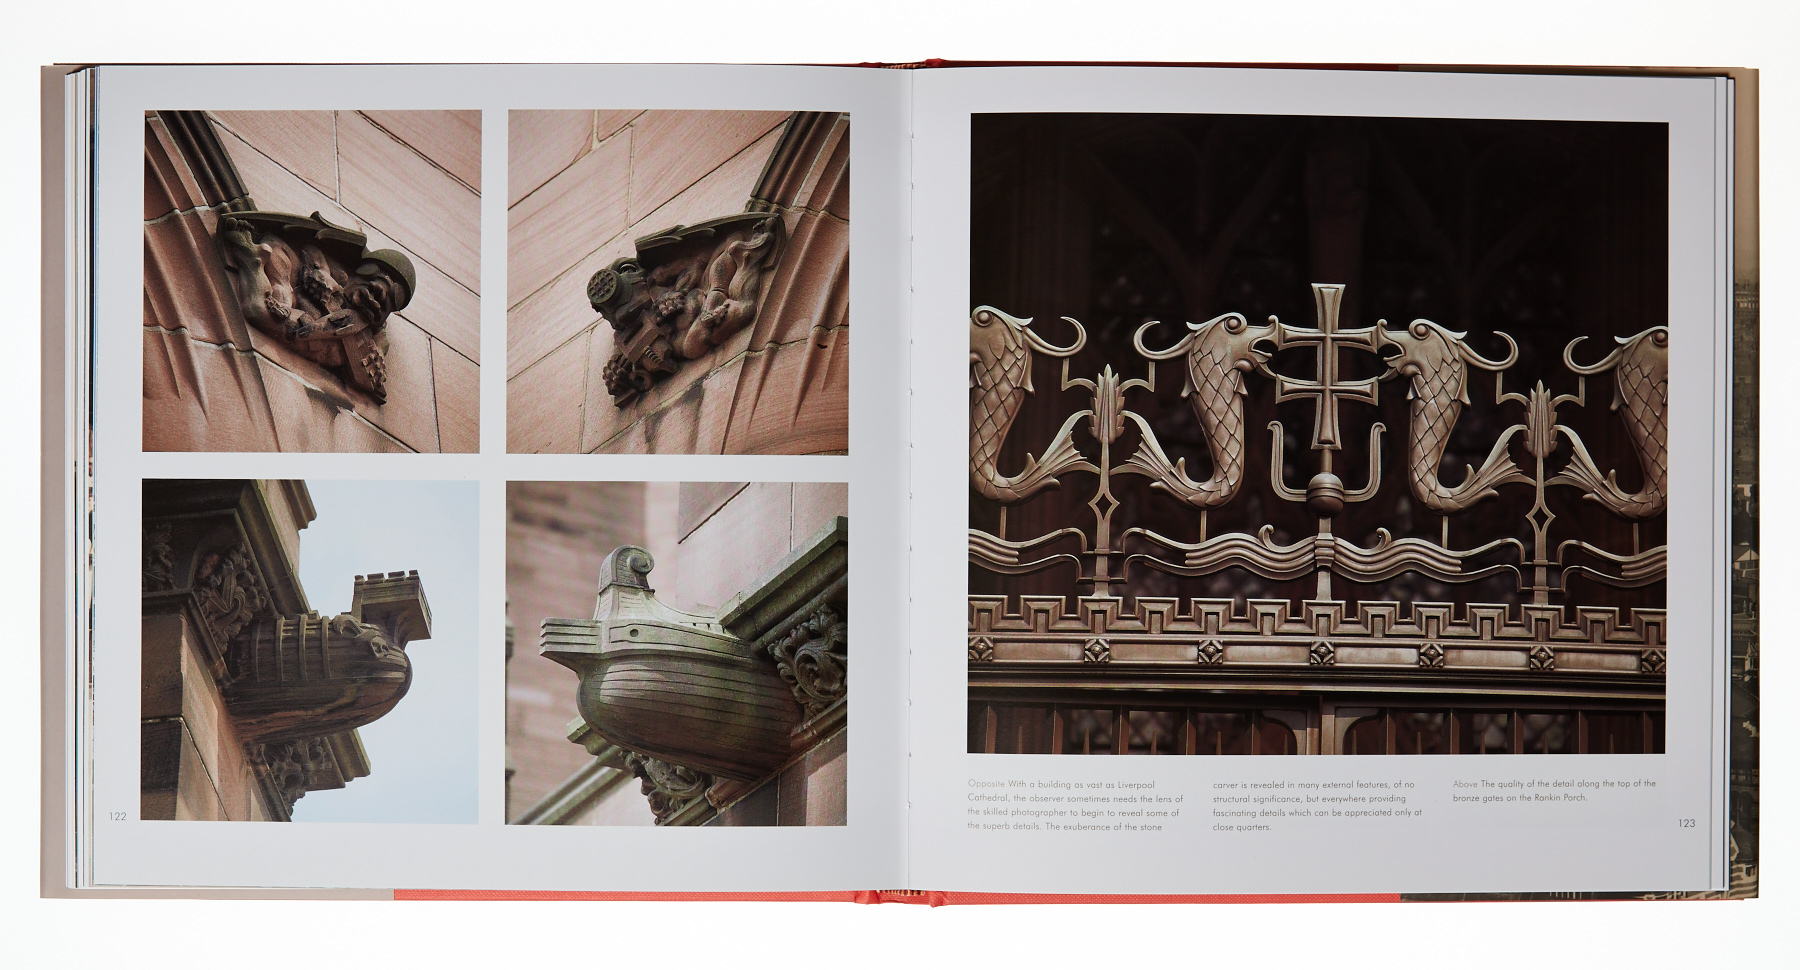 liverpool-cathedral-book-page-122.jpg